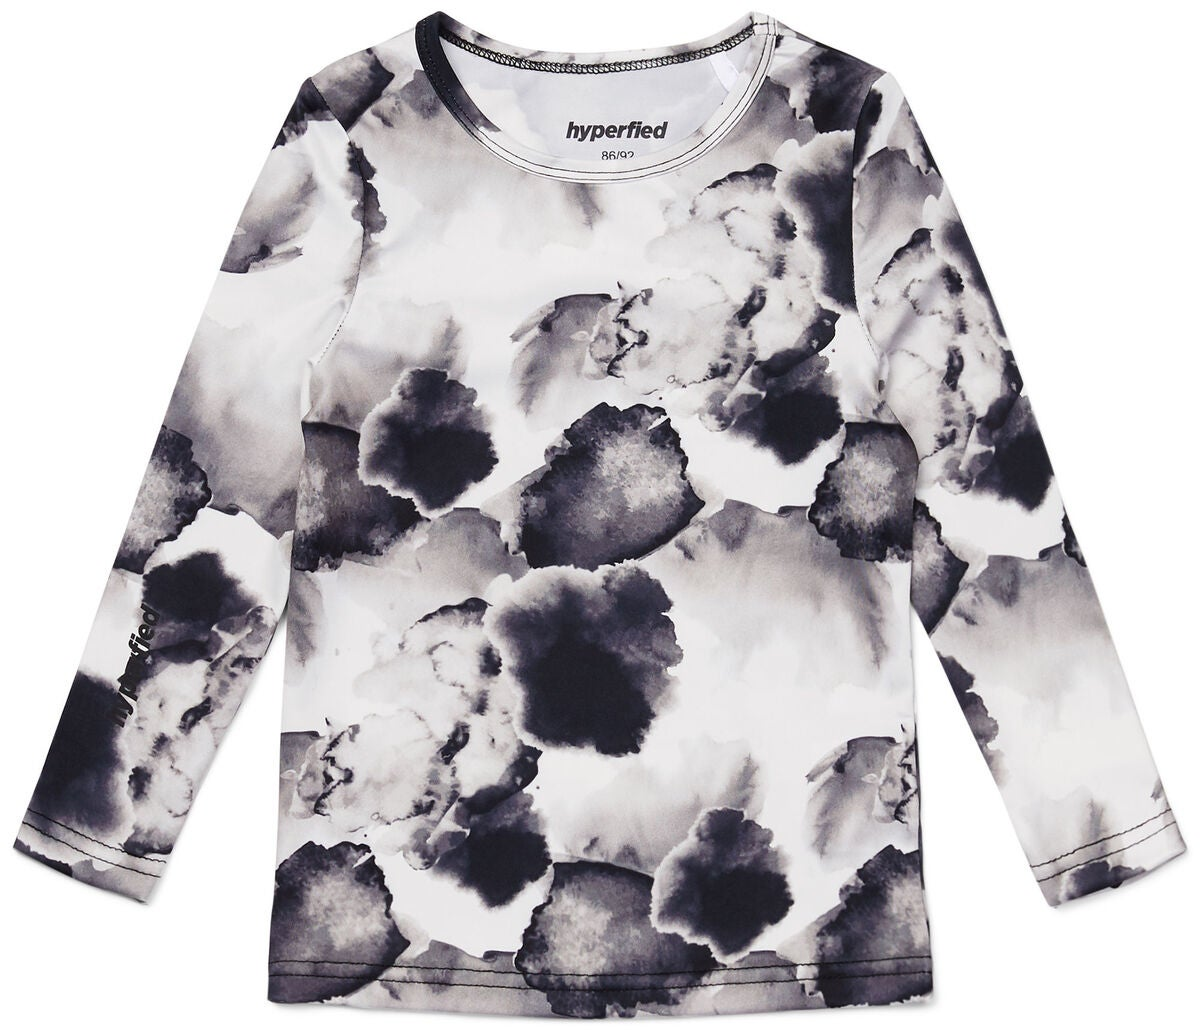 Hyperfied Long Sleeve Logo Top, Black/Grey Watercolor